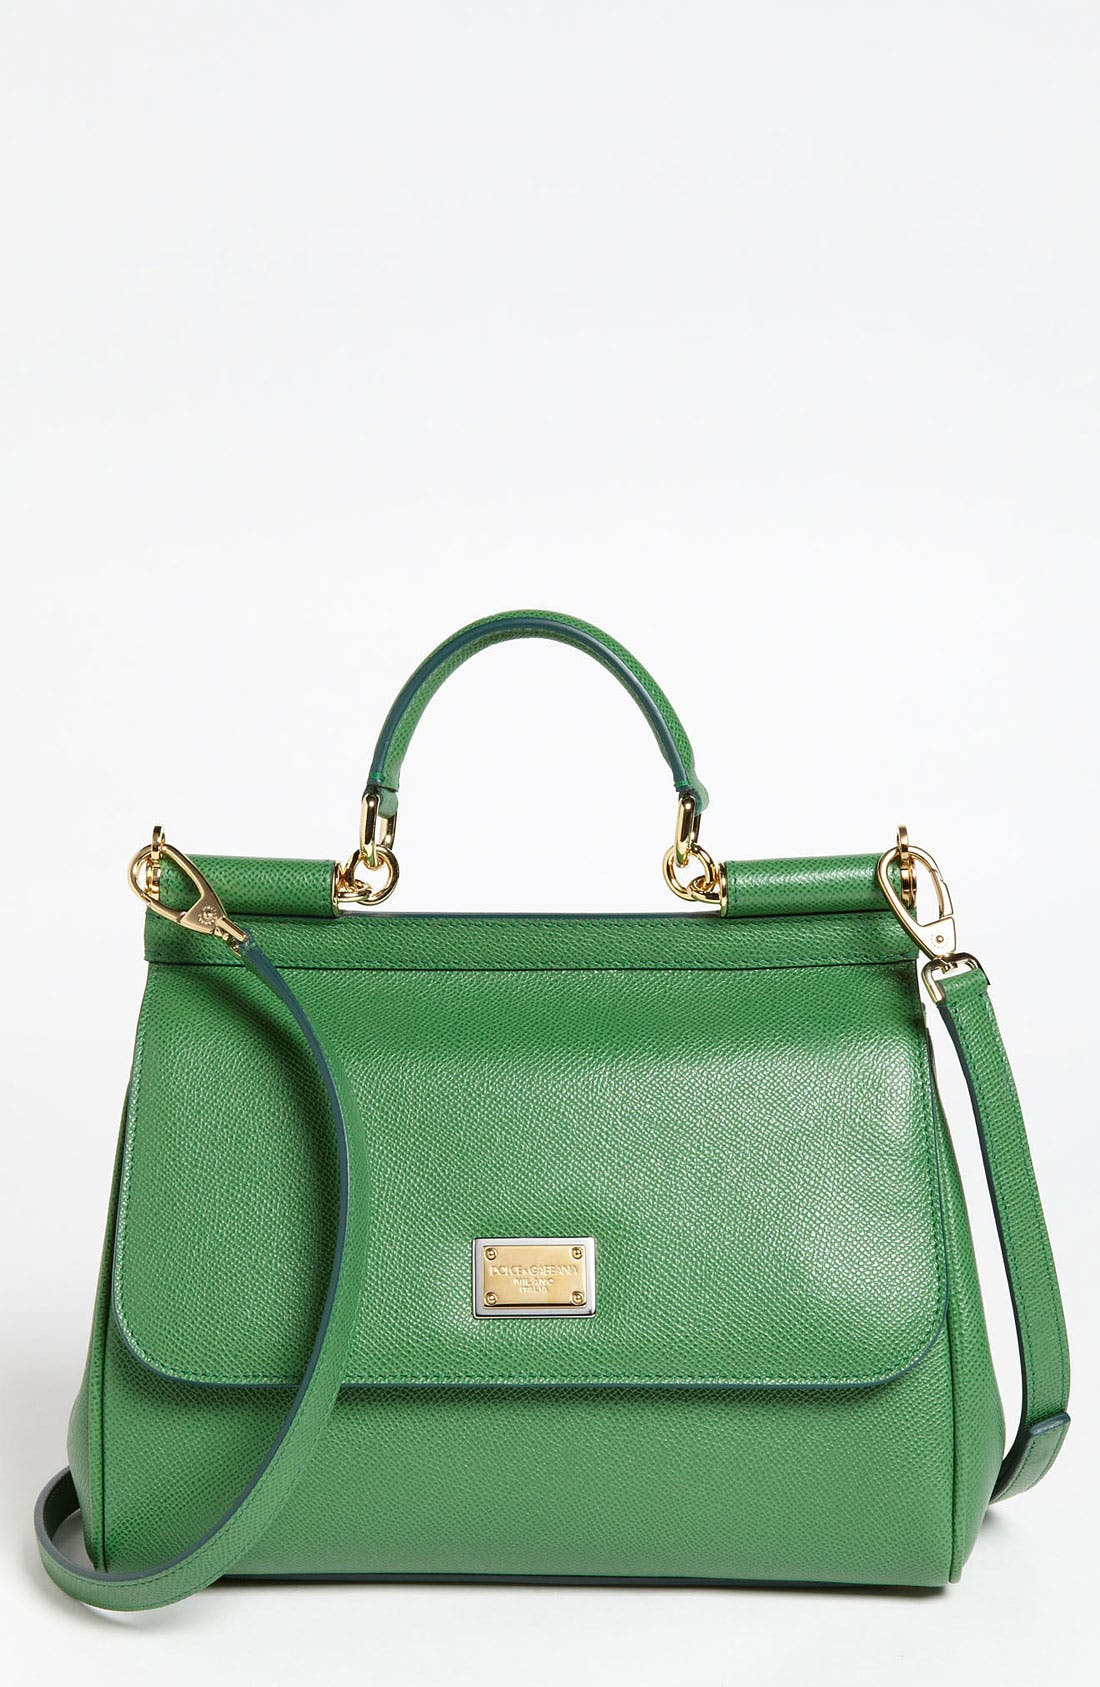 Main Image - Dolce&Gabbana 'Miss Sicily - Small' Leather Satchel